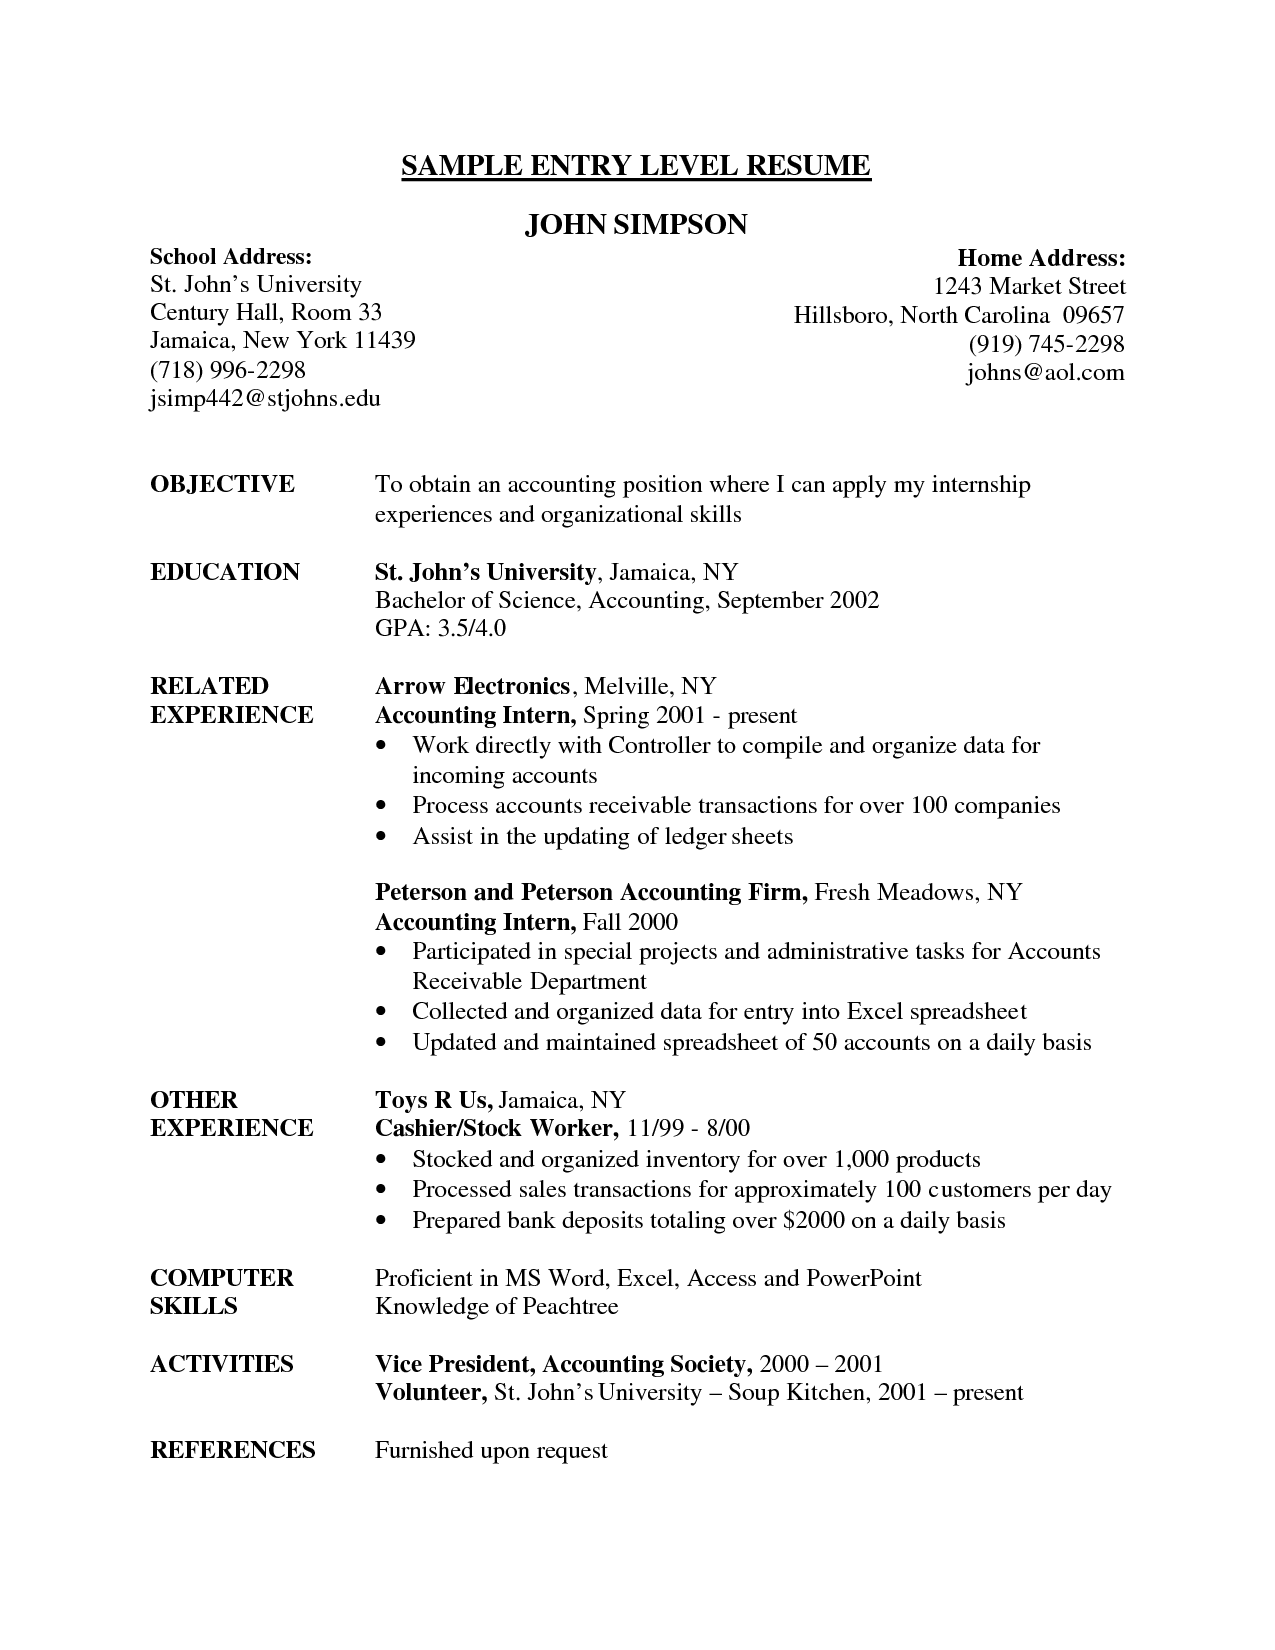 Professional Profile Resume Sample Example Of Resume Profile Entry Level Http Www